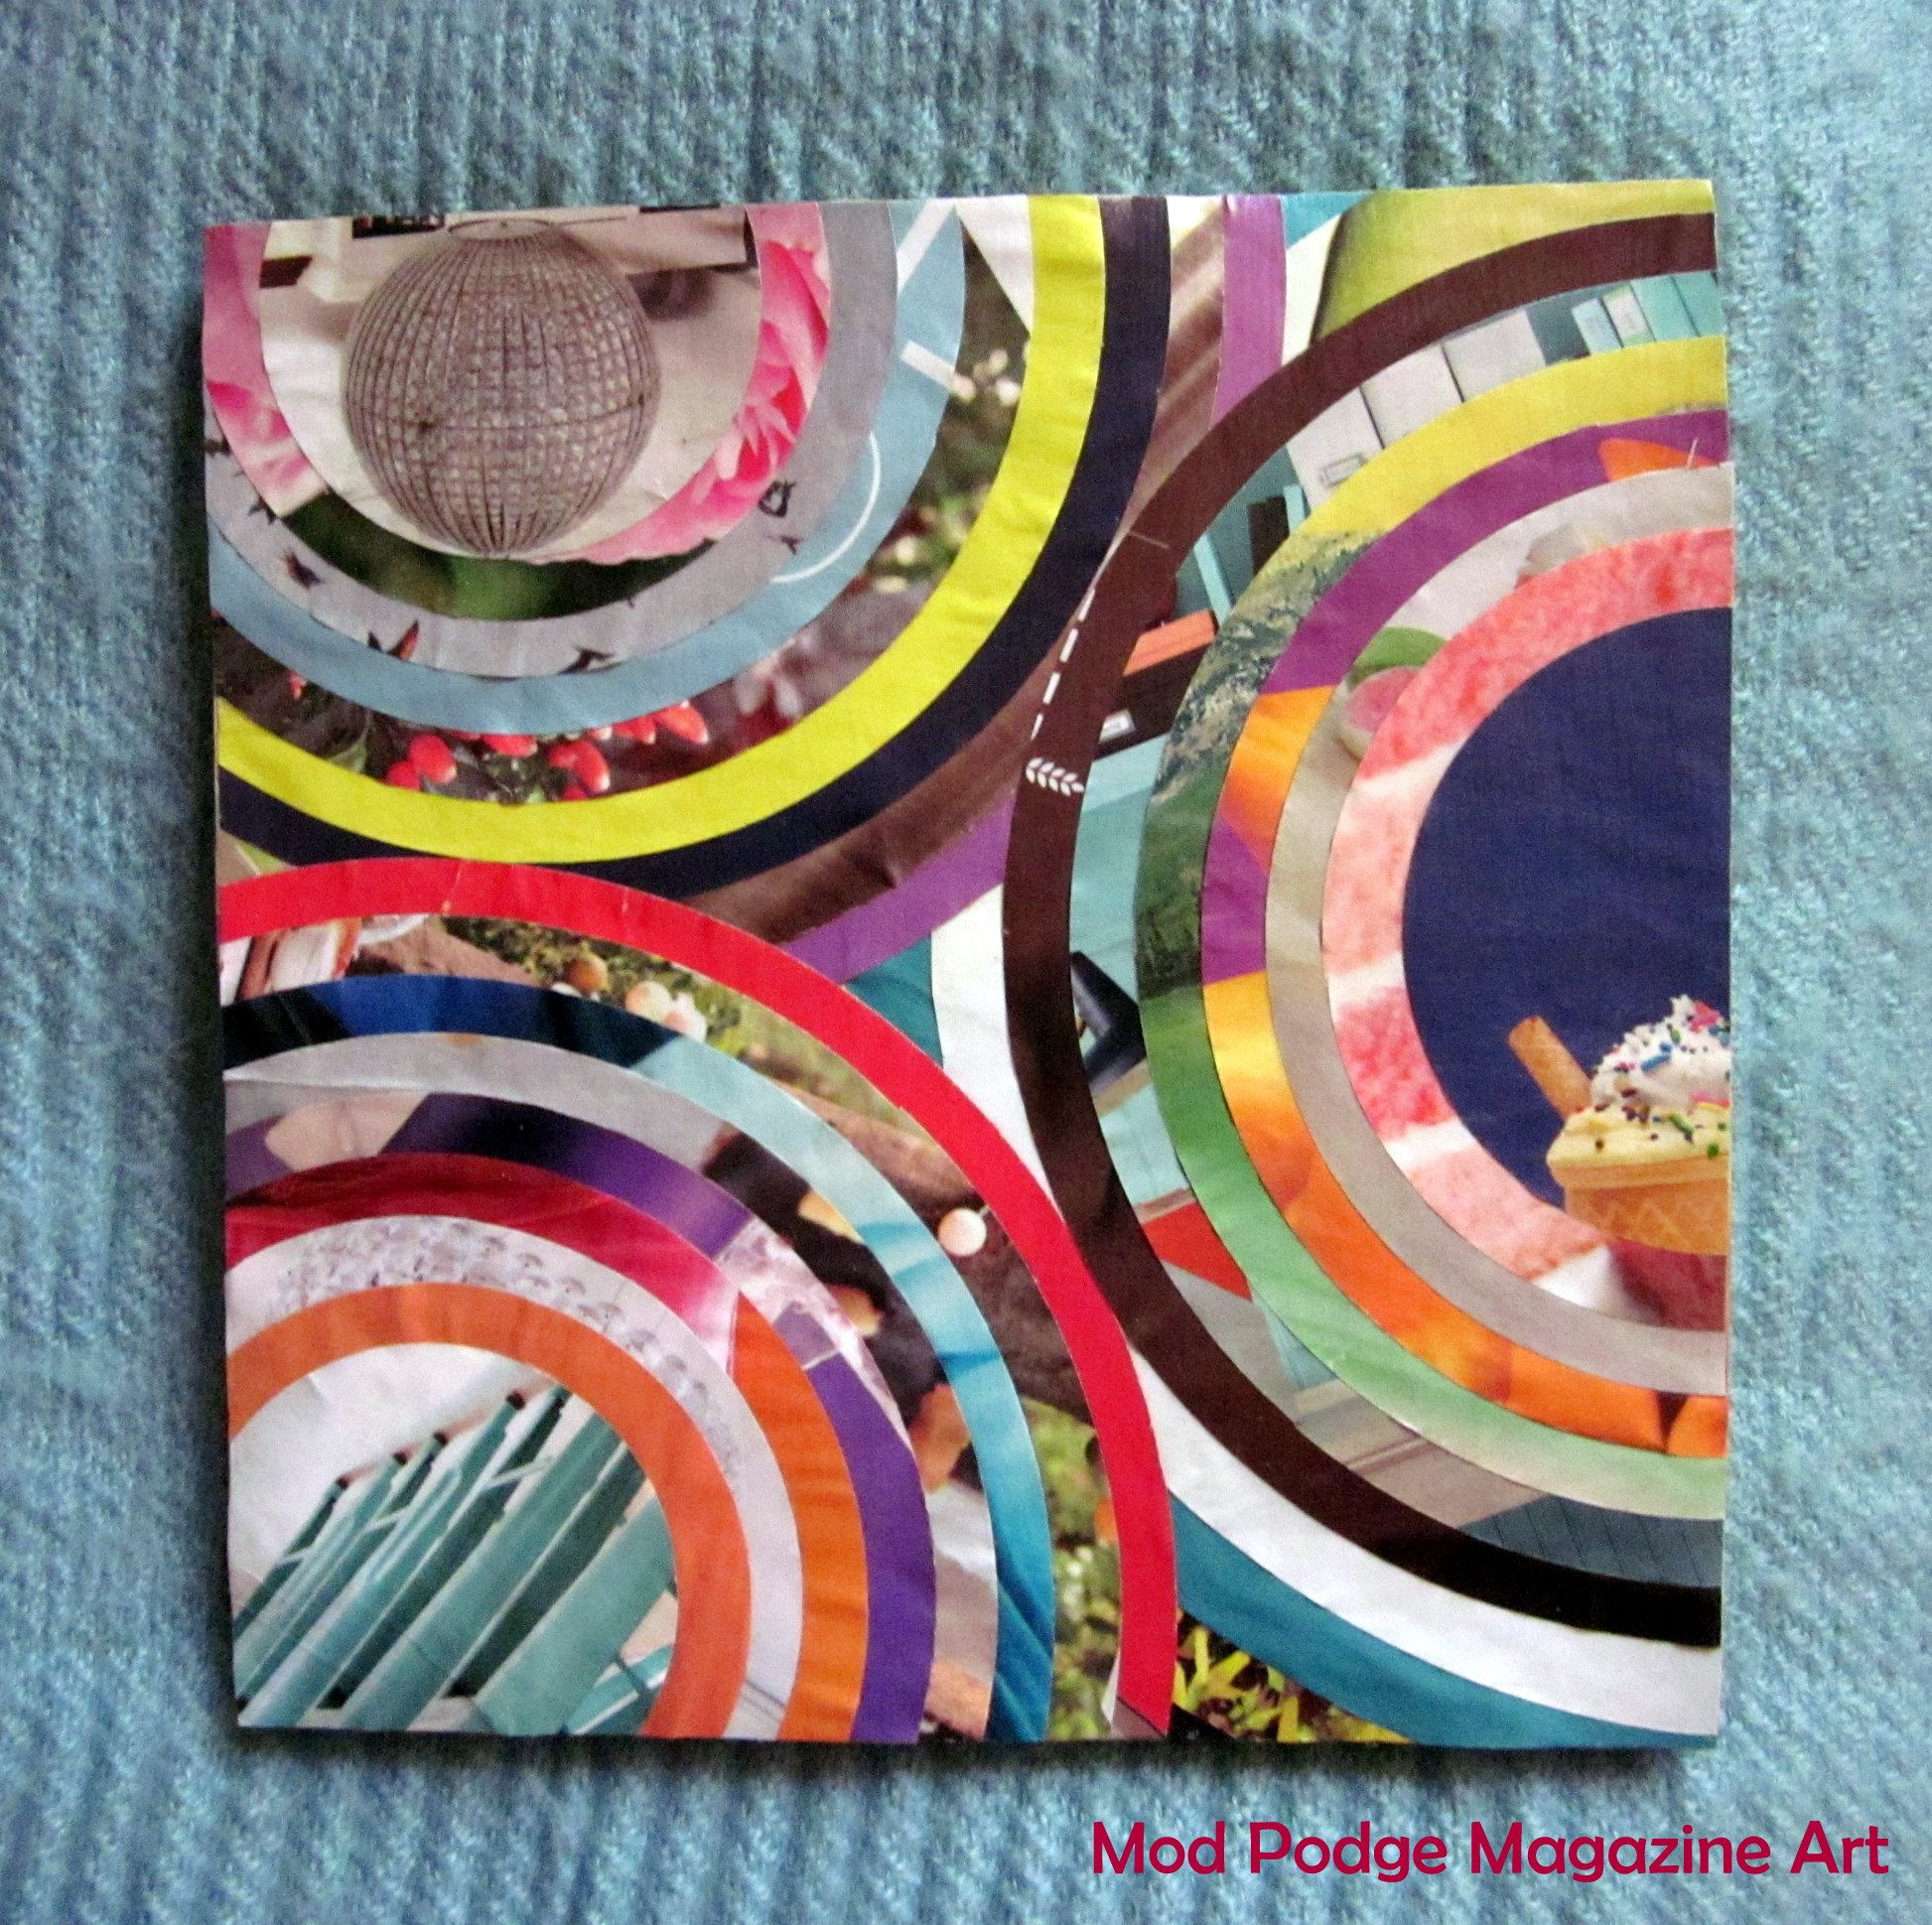 Color art magazine - Mod Podge Magazine Art Going To Have To Bust Out The Mod Podge And Make Some